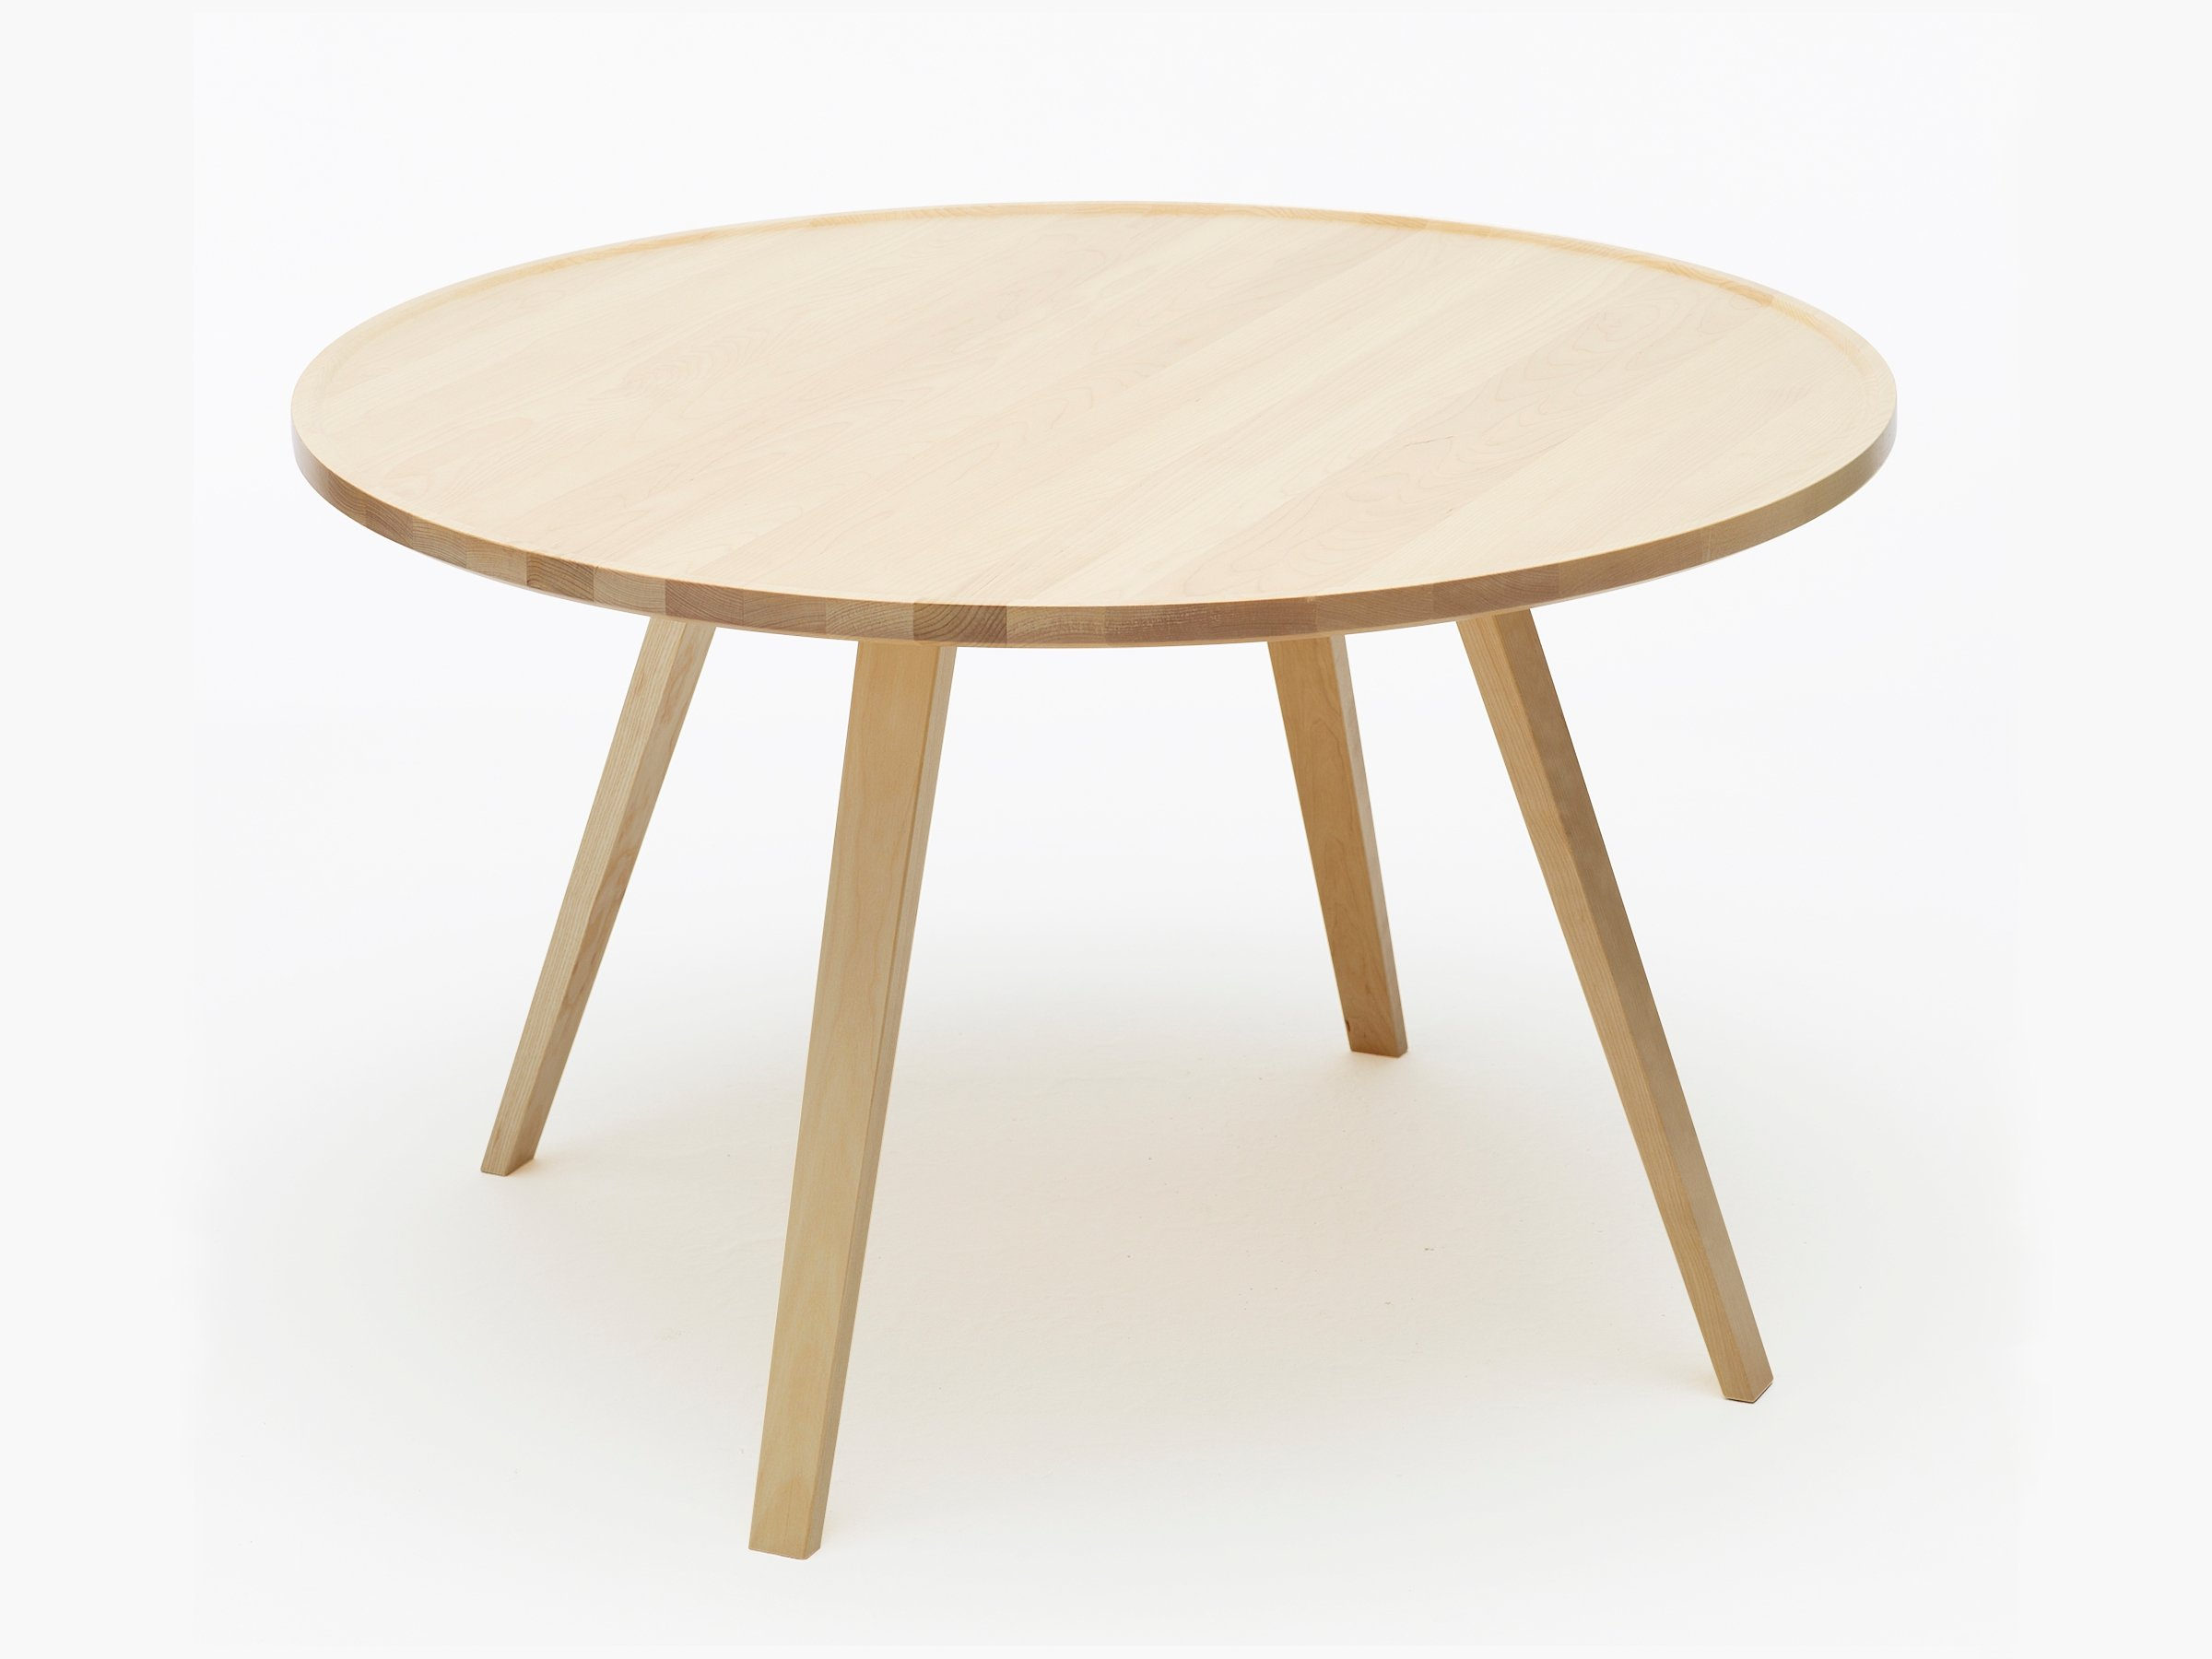 Mill table basse ronde by karl andersson s ner design roger persson - Table basse bois ronde ...